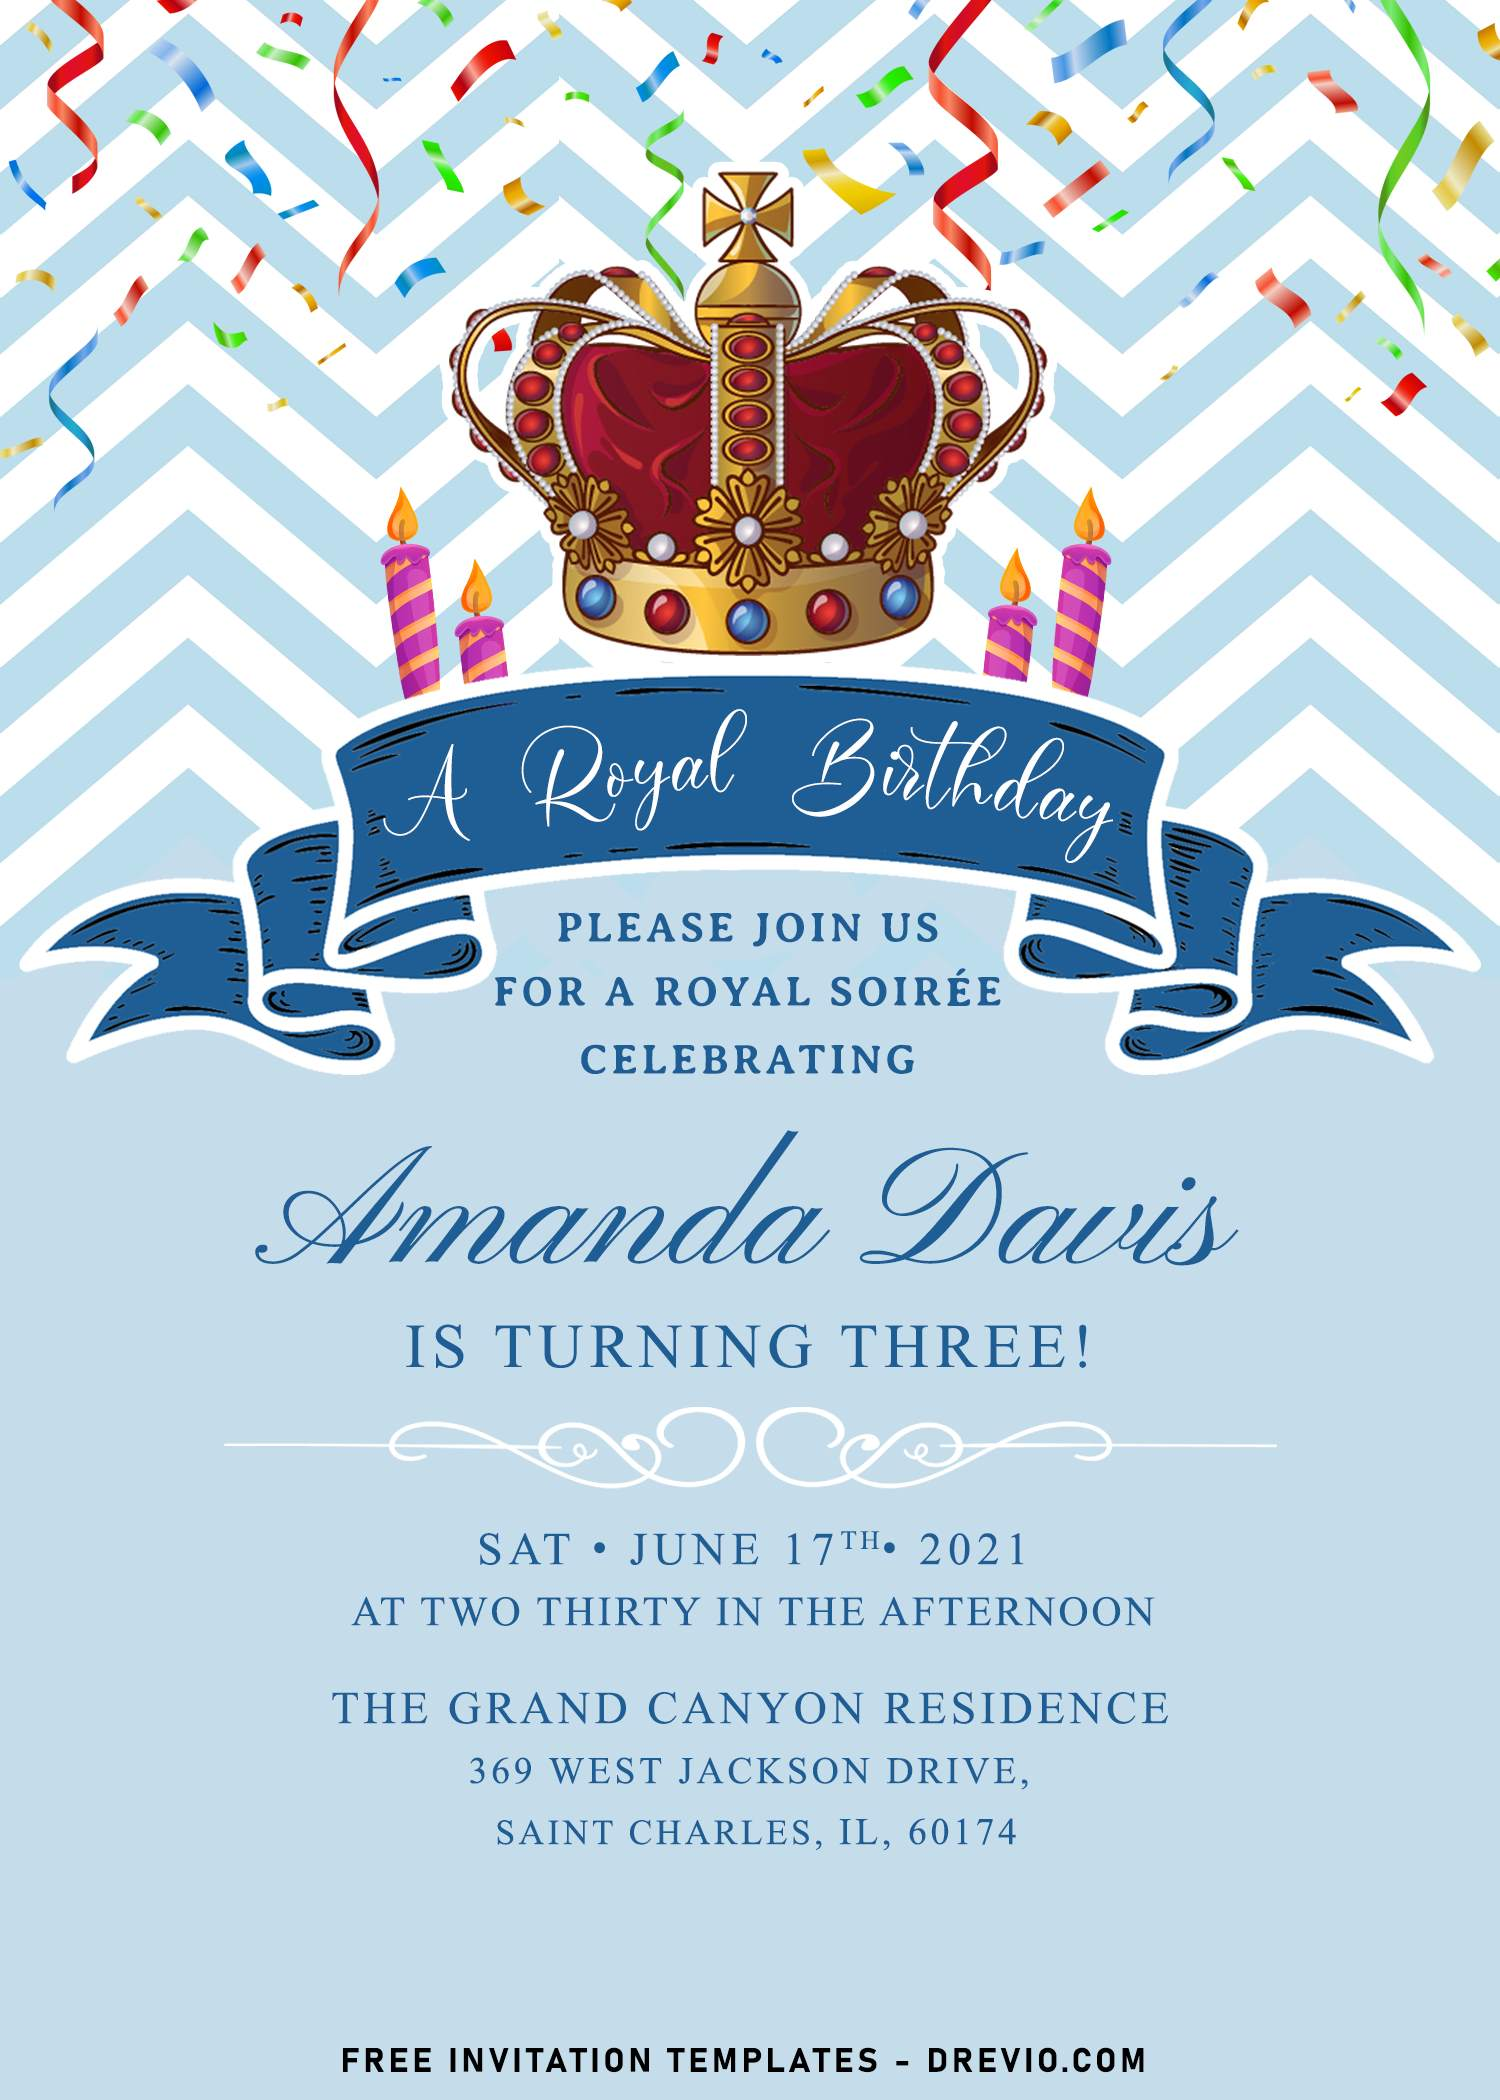 8 royal birthday invitation templates